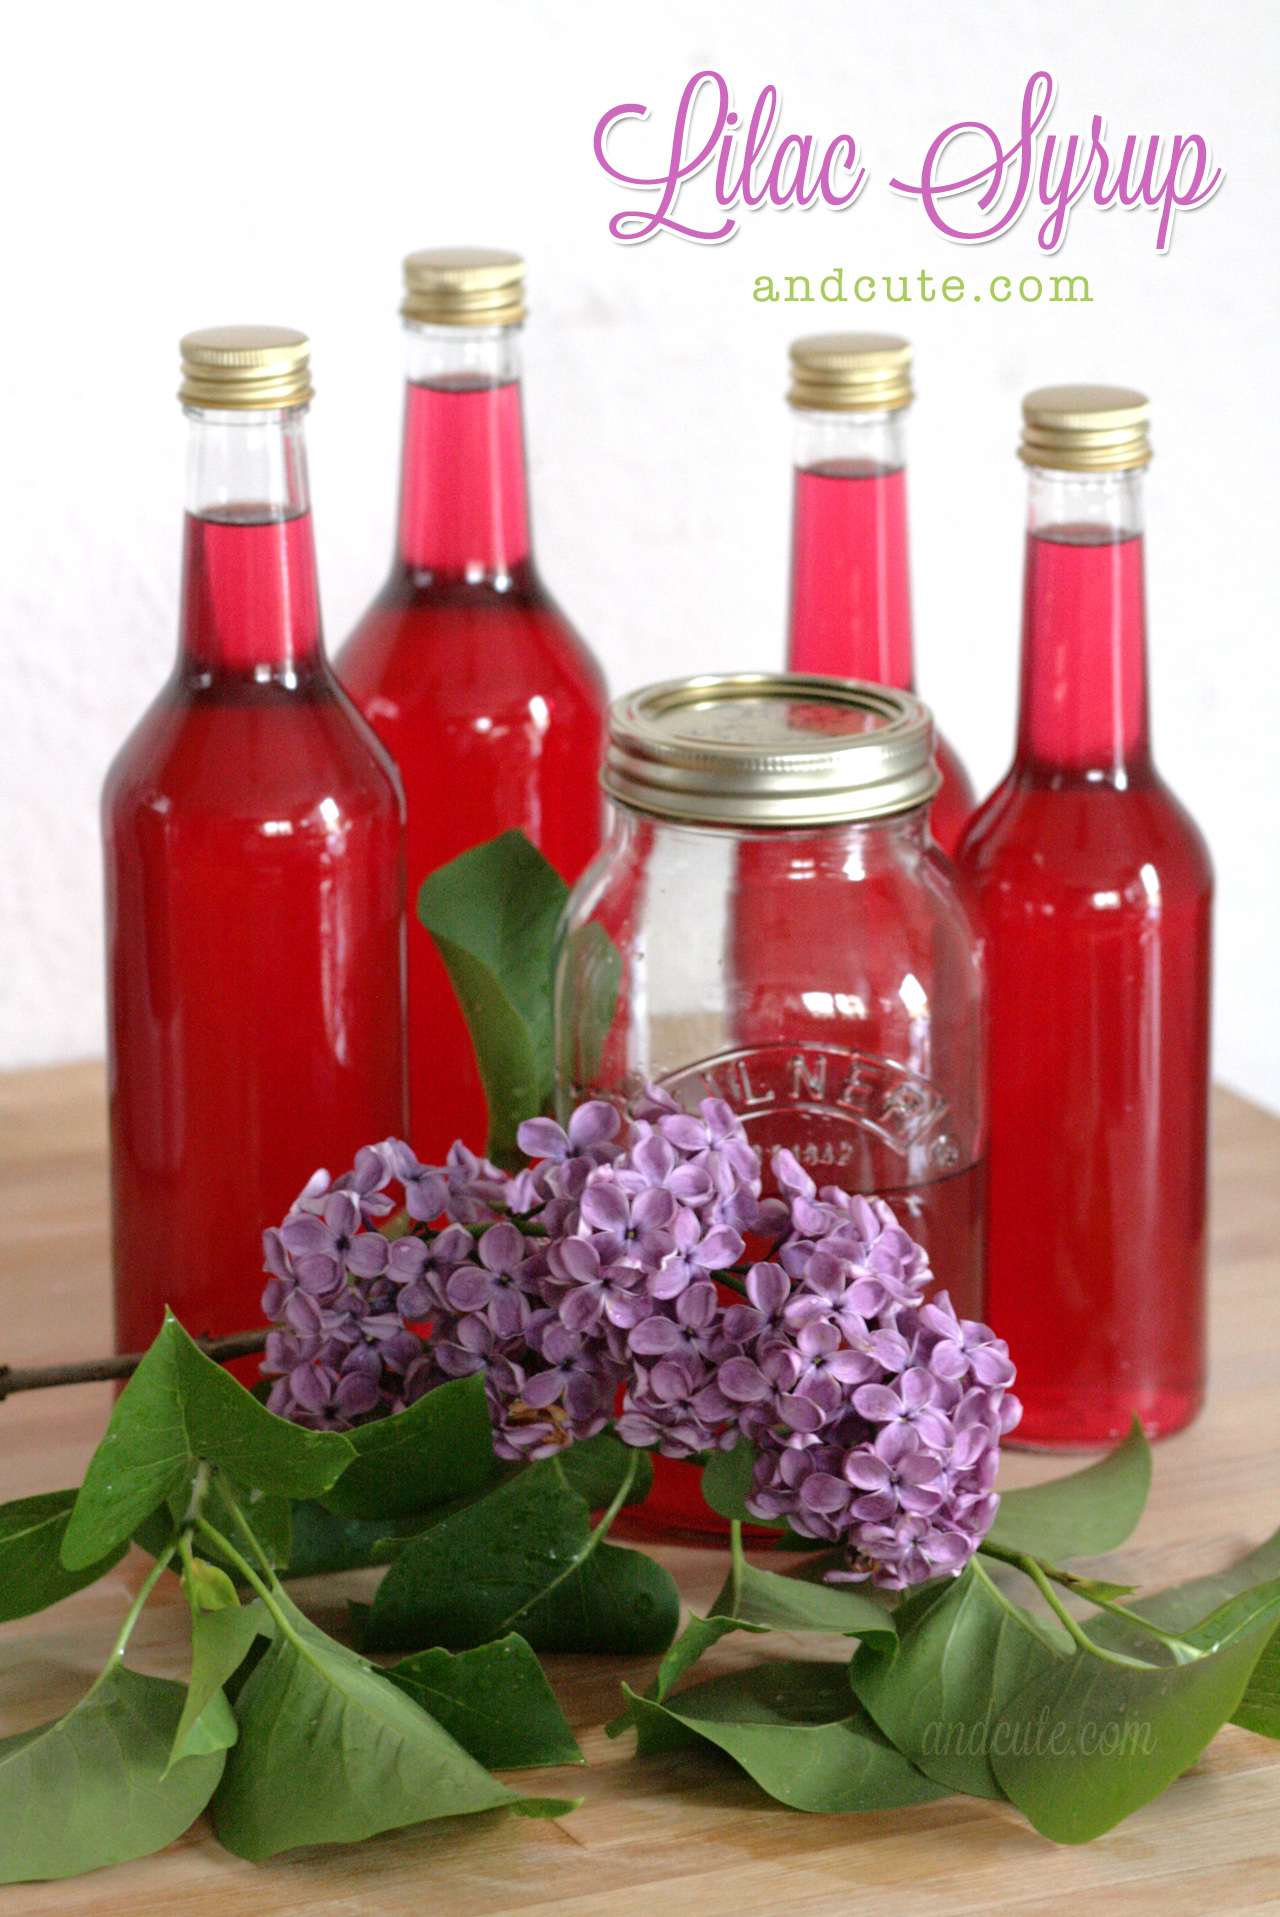 Lilac Syrup.